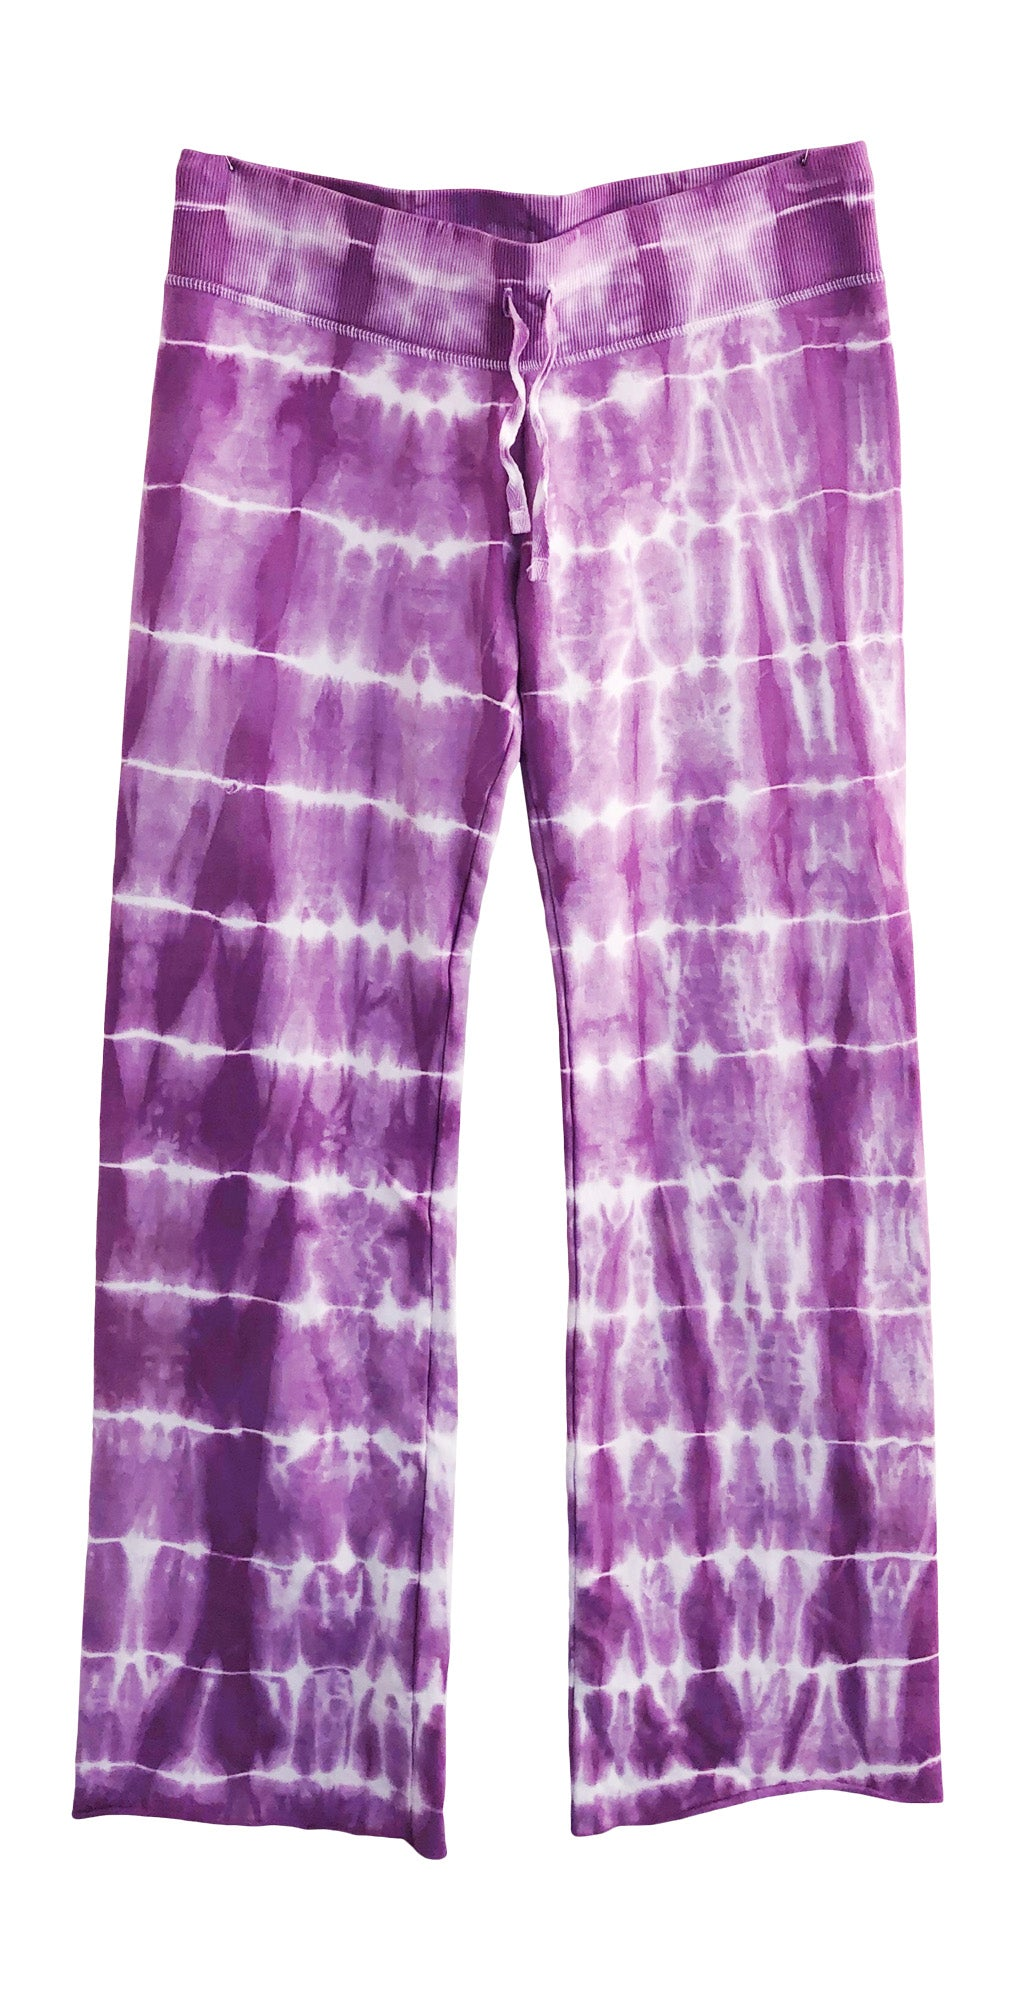 Women's Purple Tie Dye Sweats